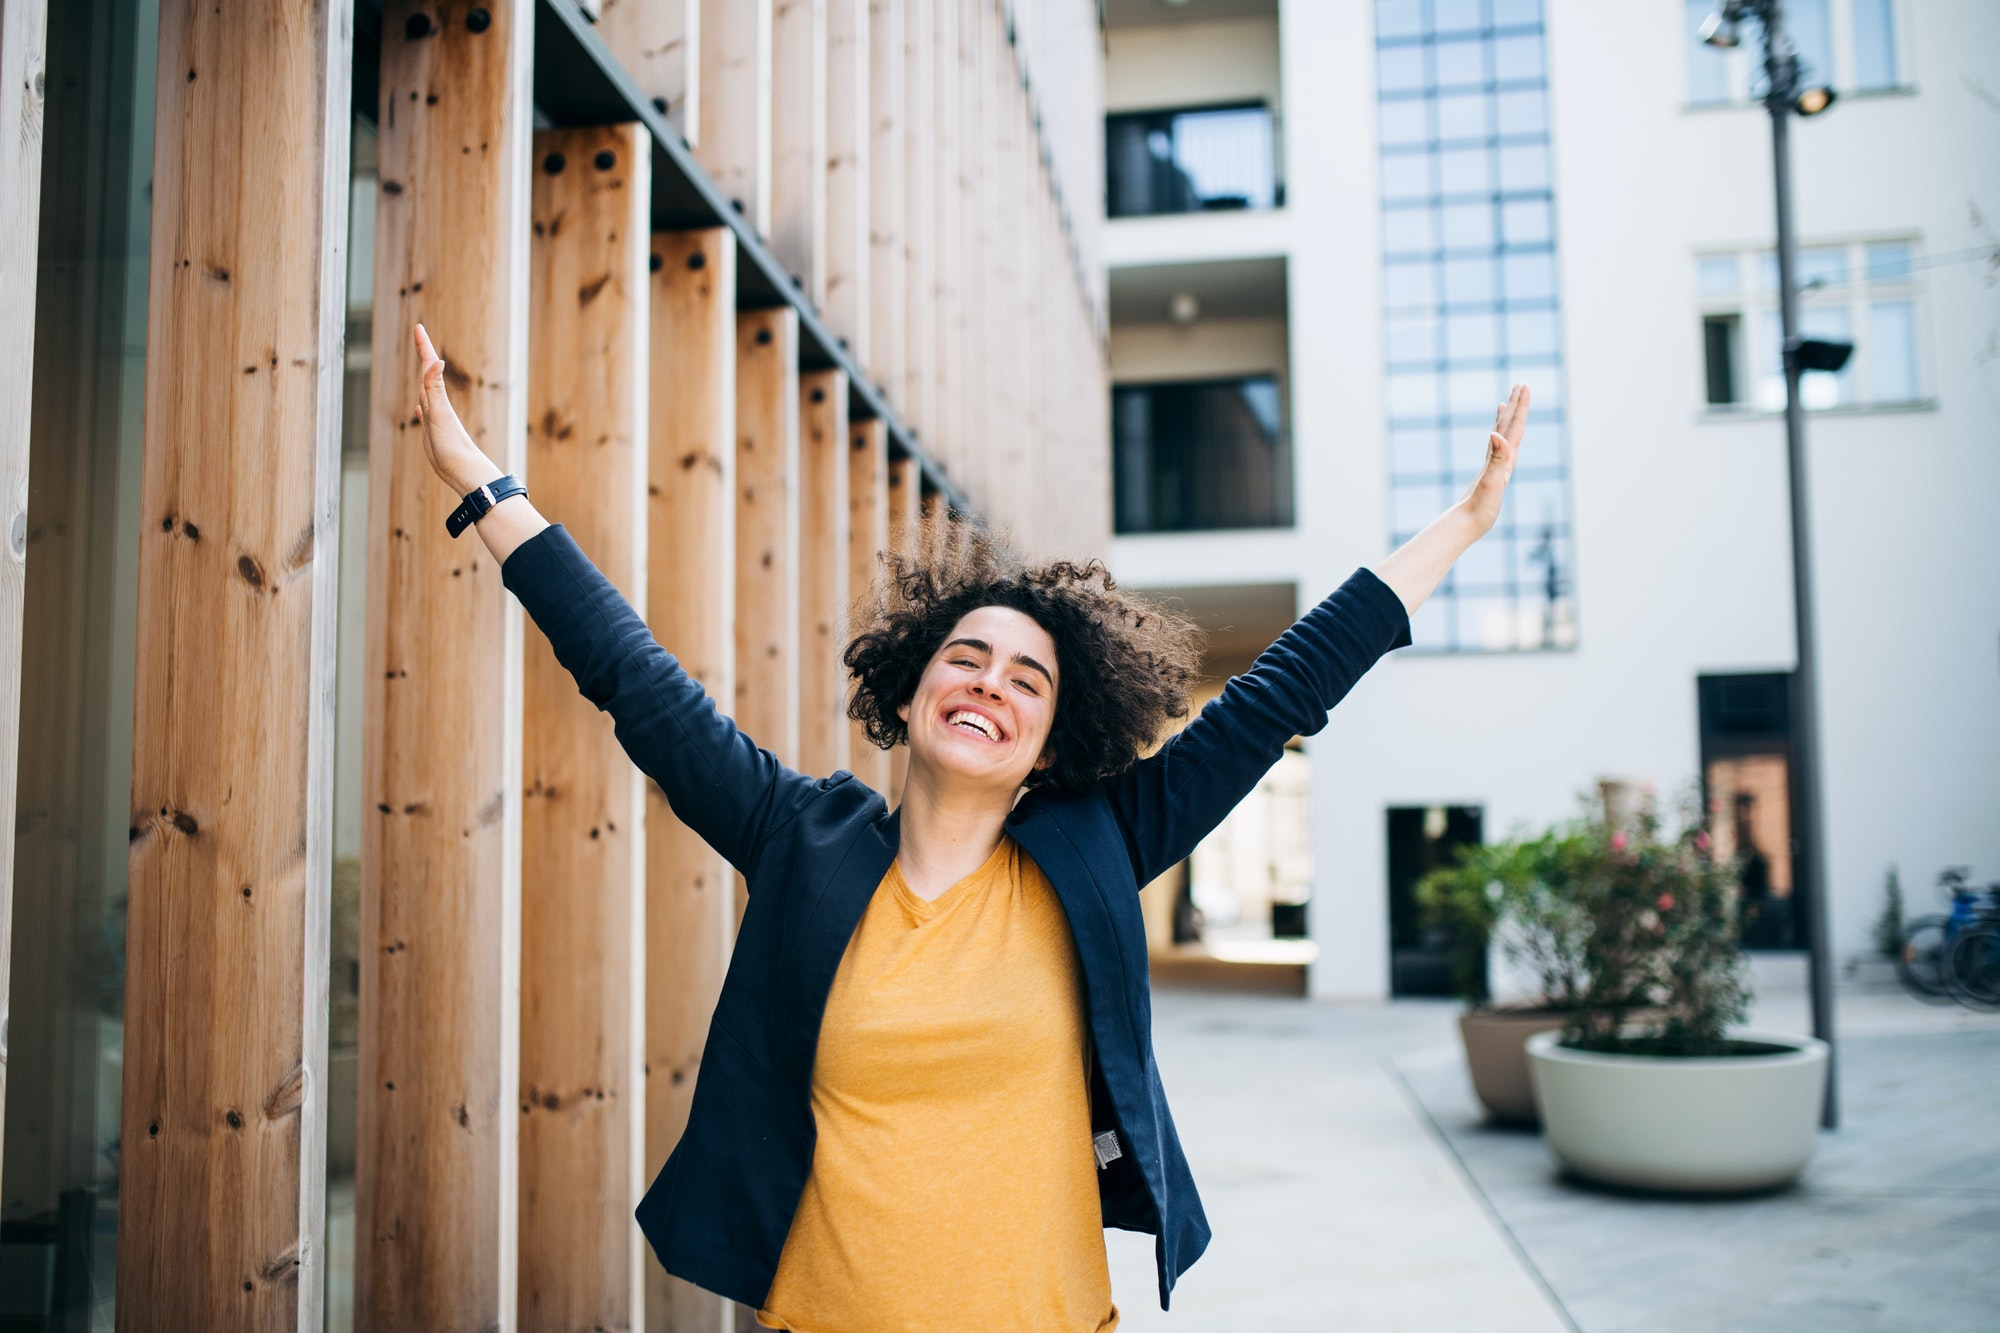 A young businesswoman standing outdoors, expressing excitement